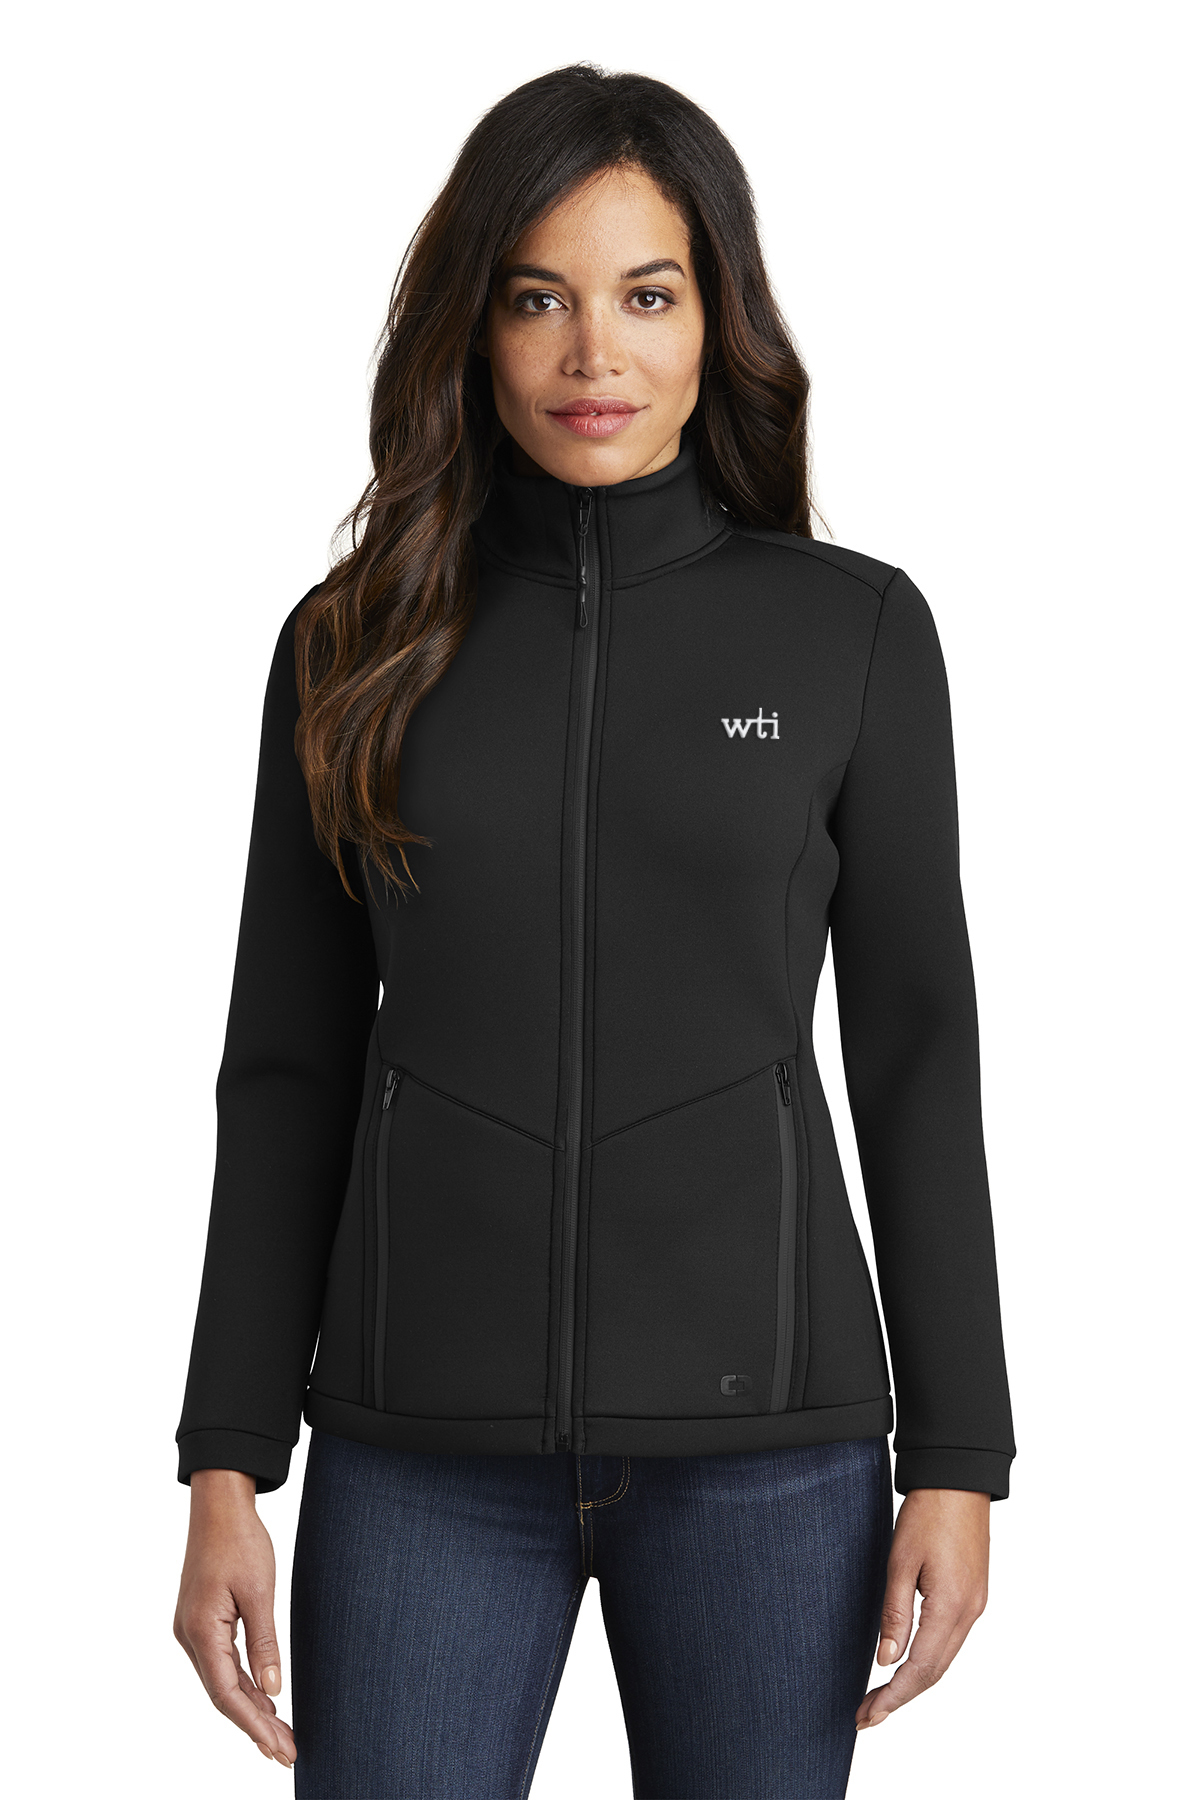 OGIO  Ladies Axis Bonded Jacket. LOG724. Prices Starting At $69!